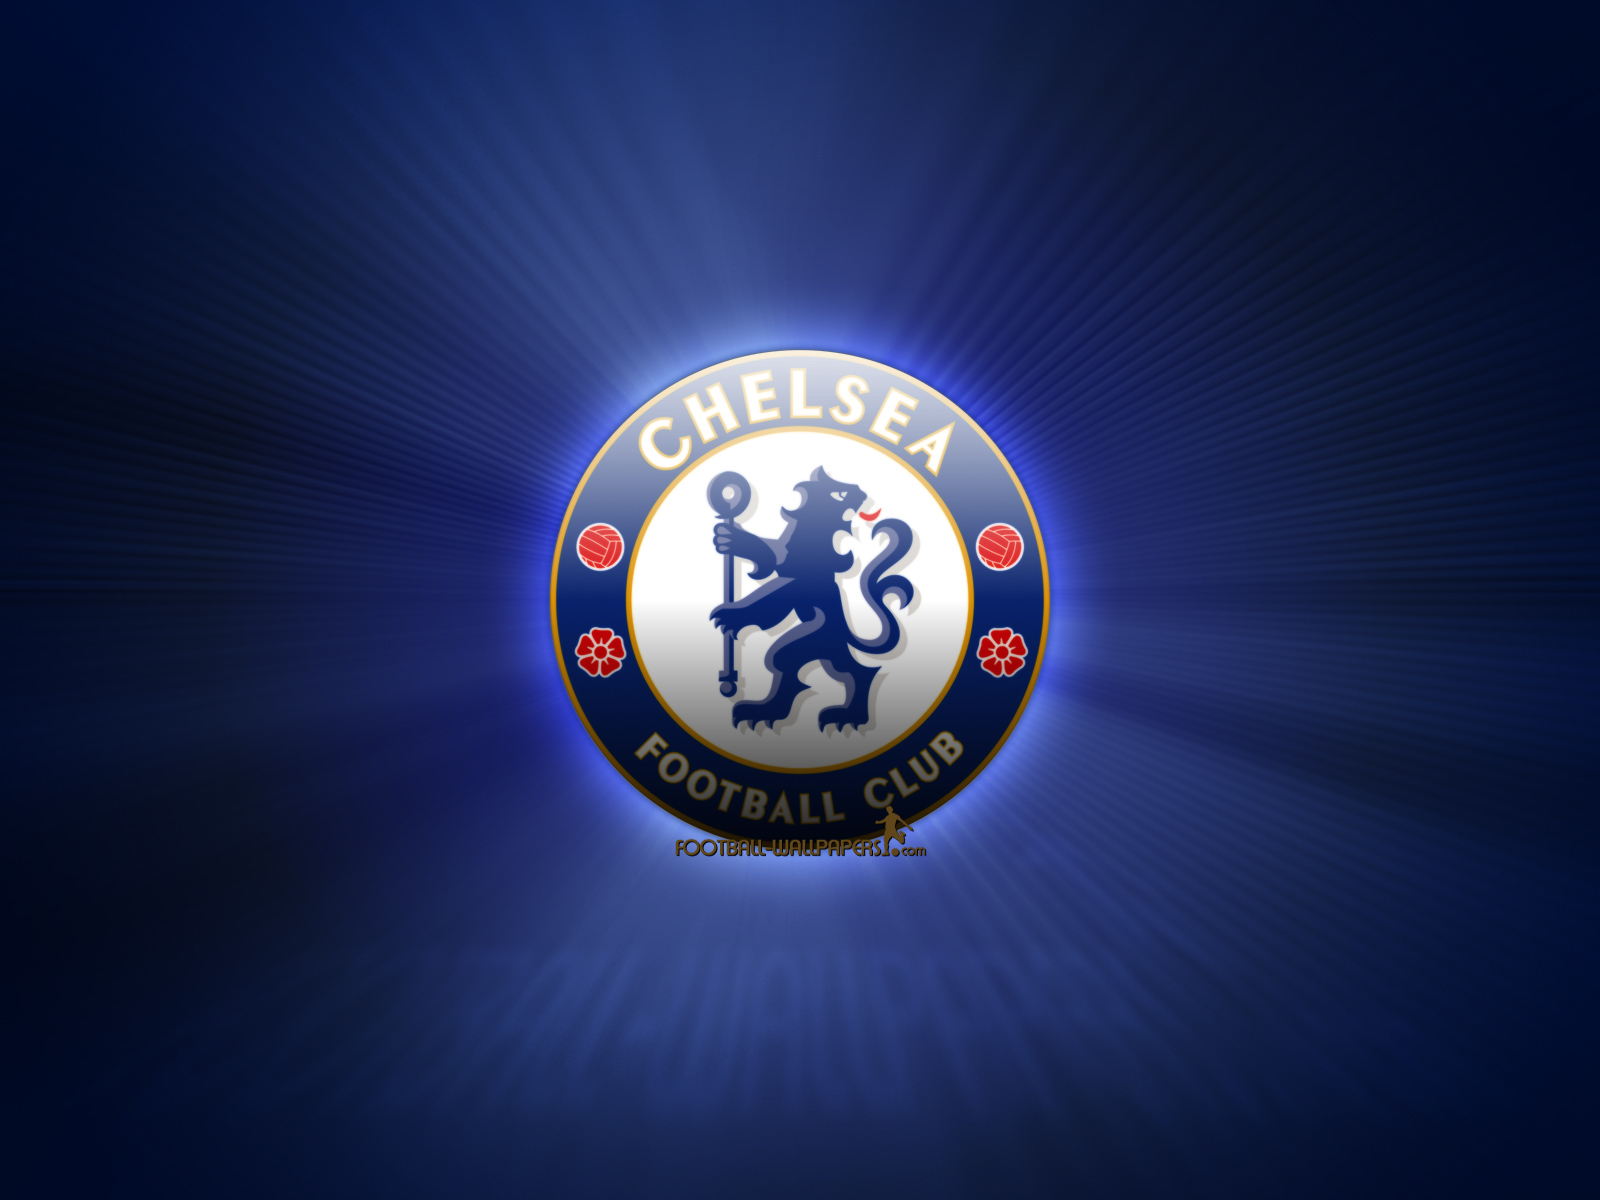 1001 WALLPAPER: Logo Chelsea F.C. (Chelsea Football Club